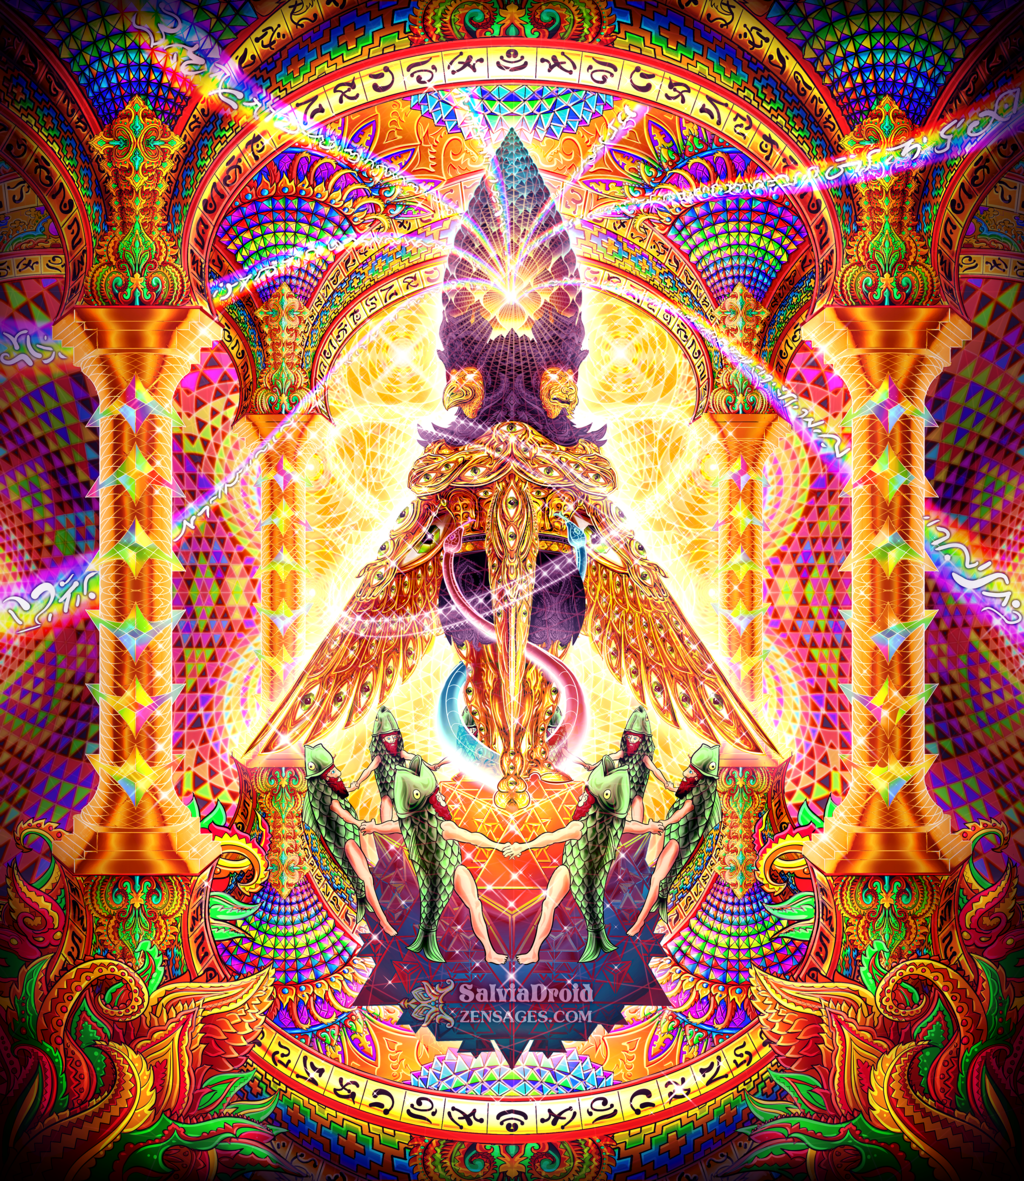 Art Projects - Music/Art/Literature - Welcome to the DMT